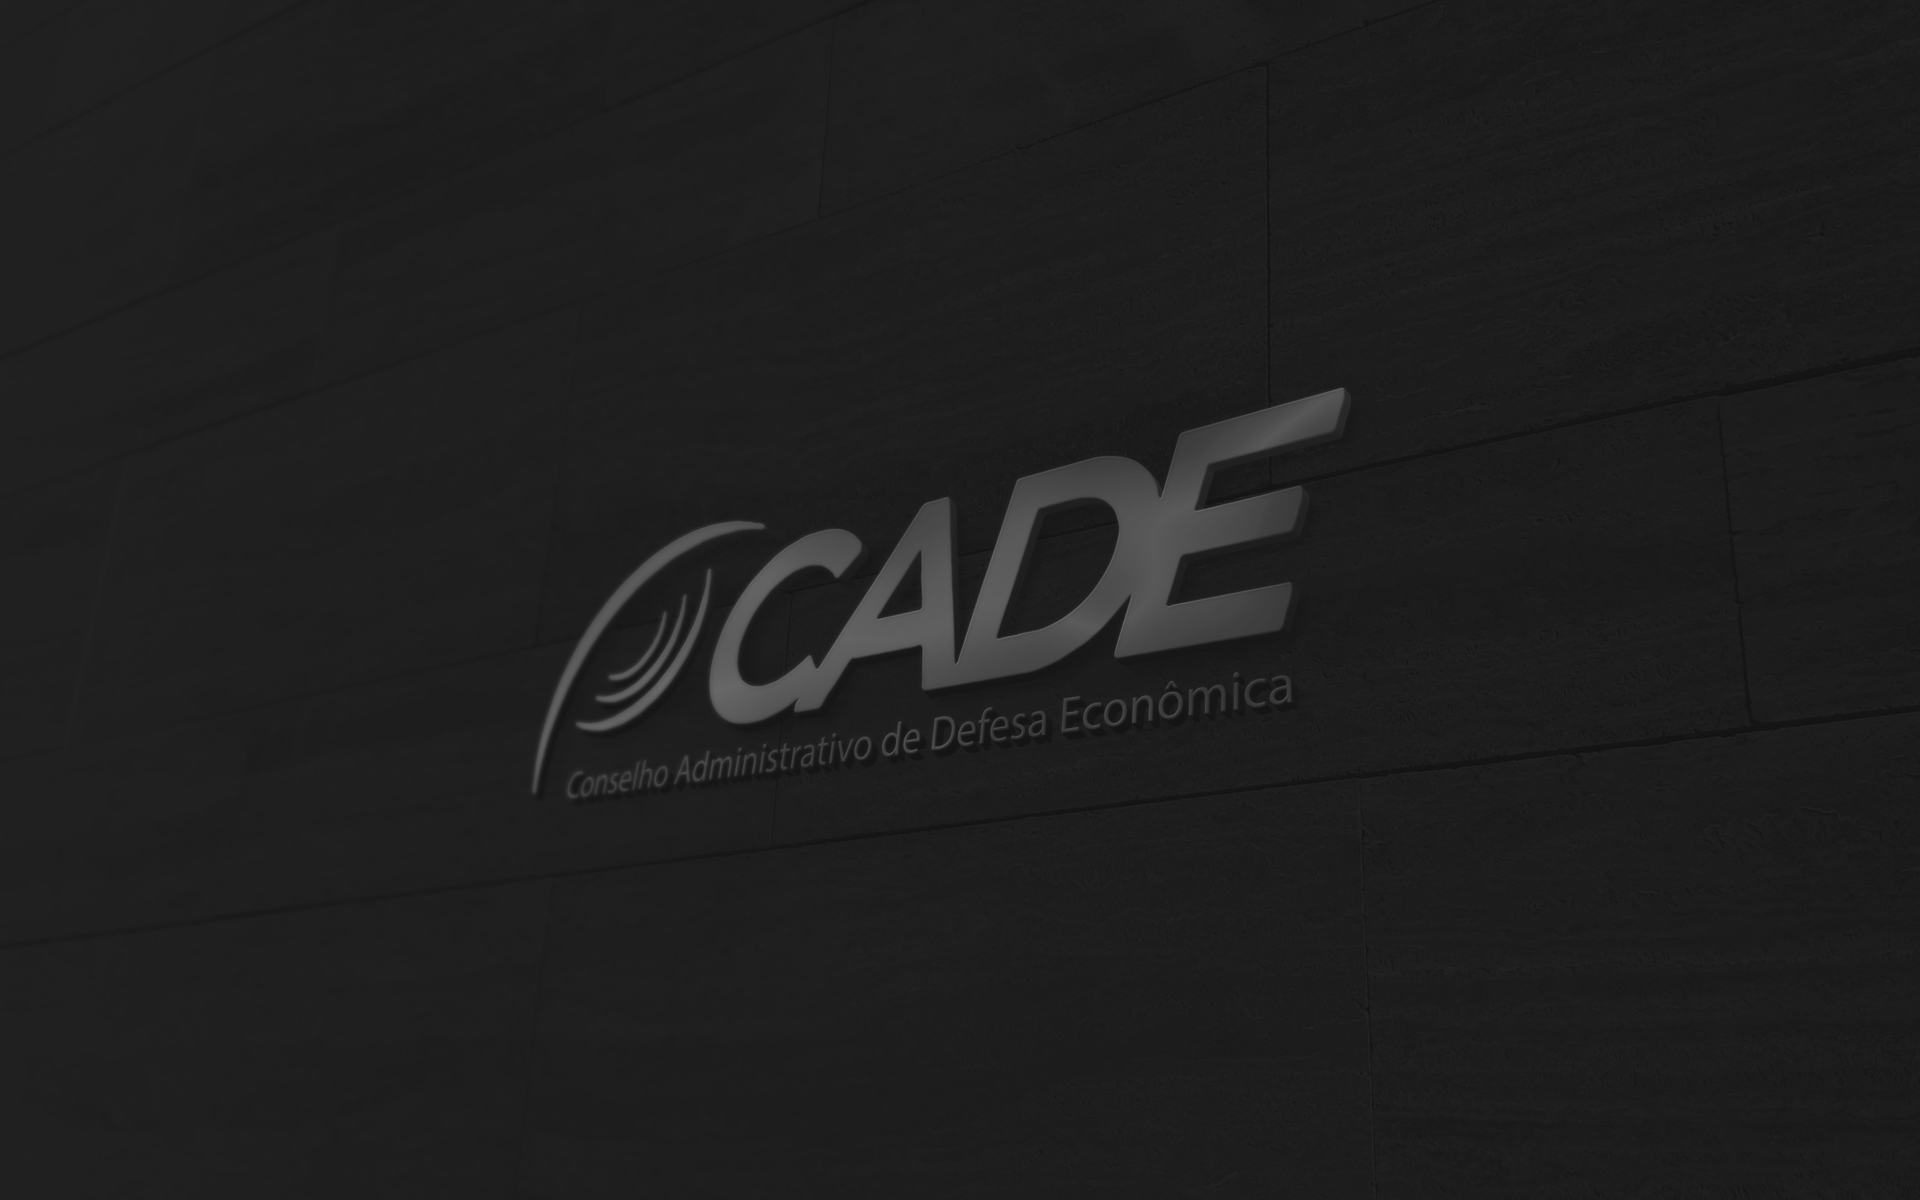 EXPERT EXAMINATIONS IN CADE MAY BECOME SIMPLER AND MORE ACCESSIBLE